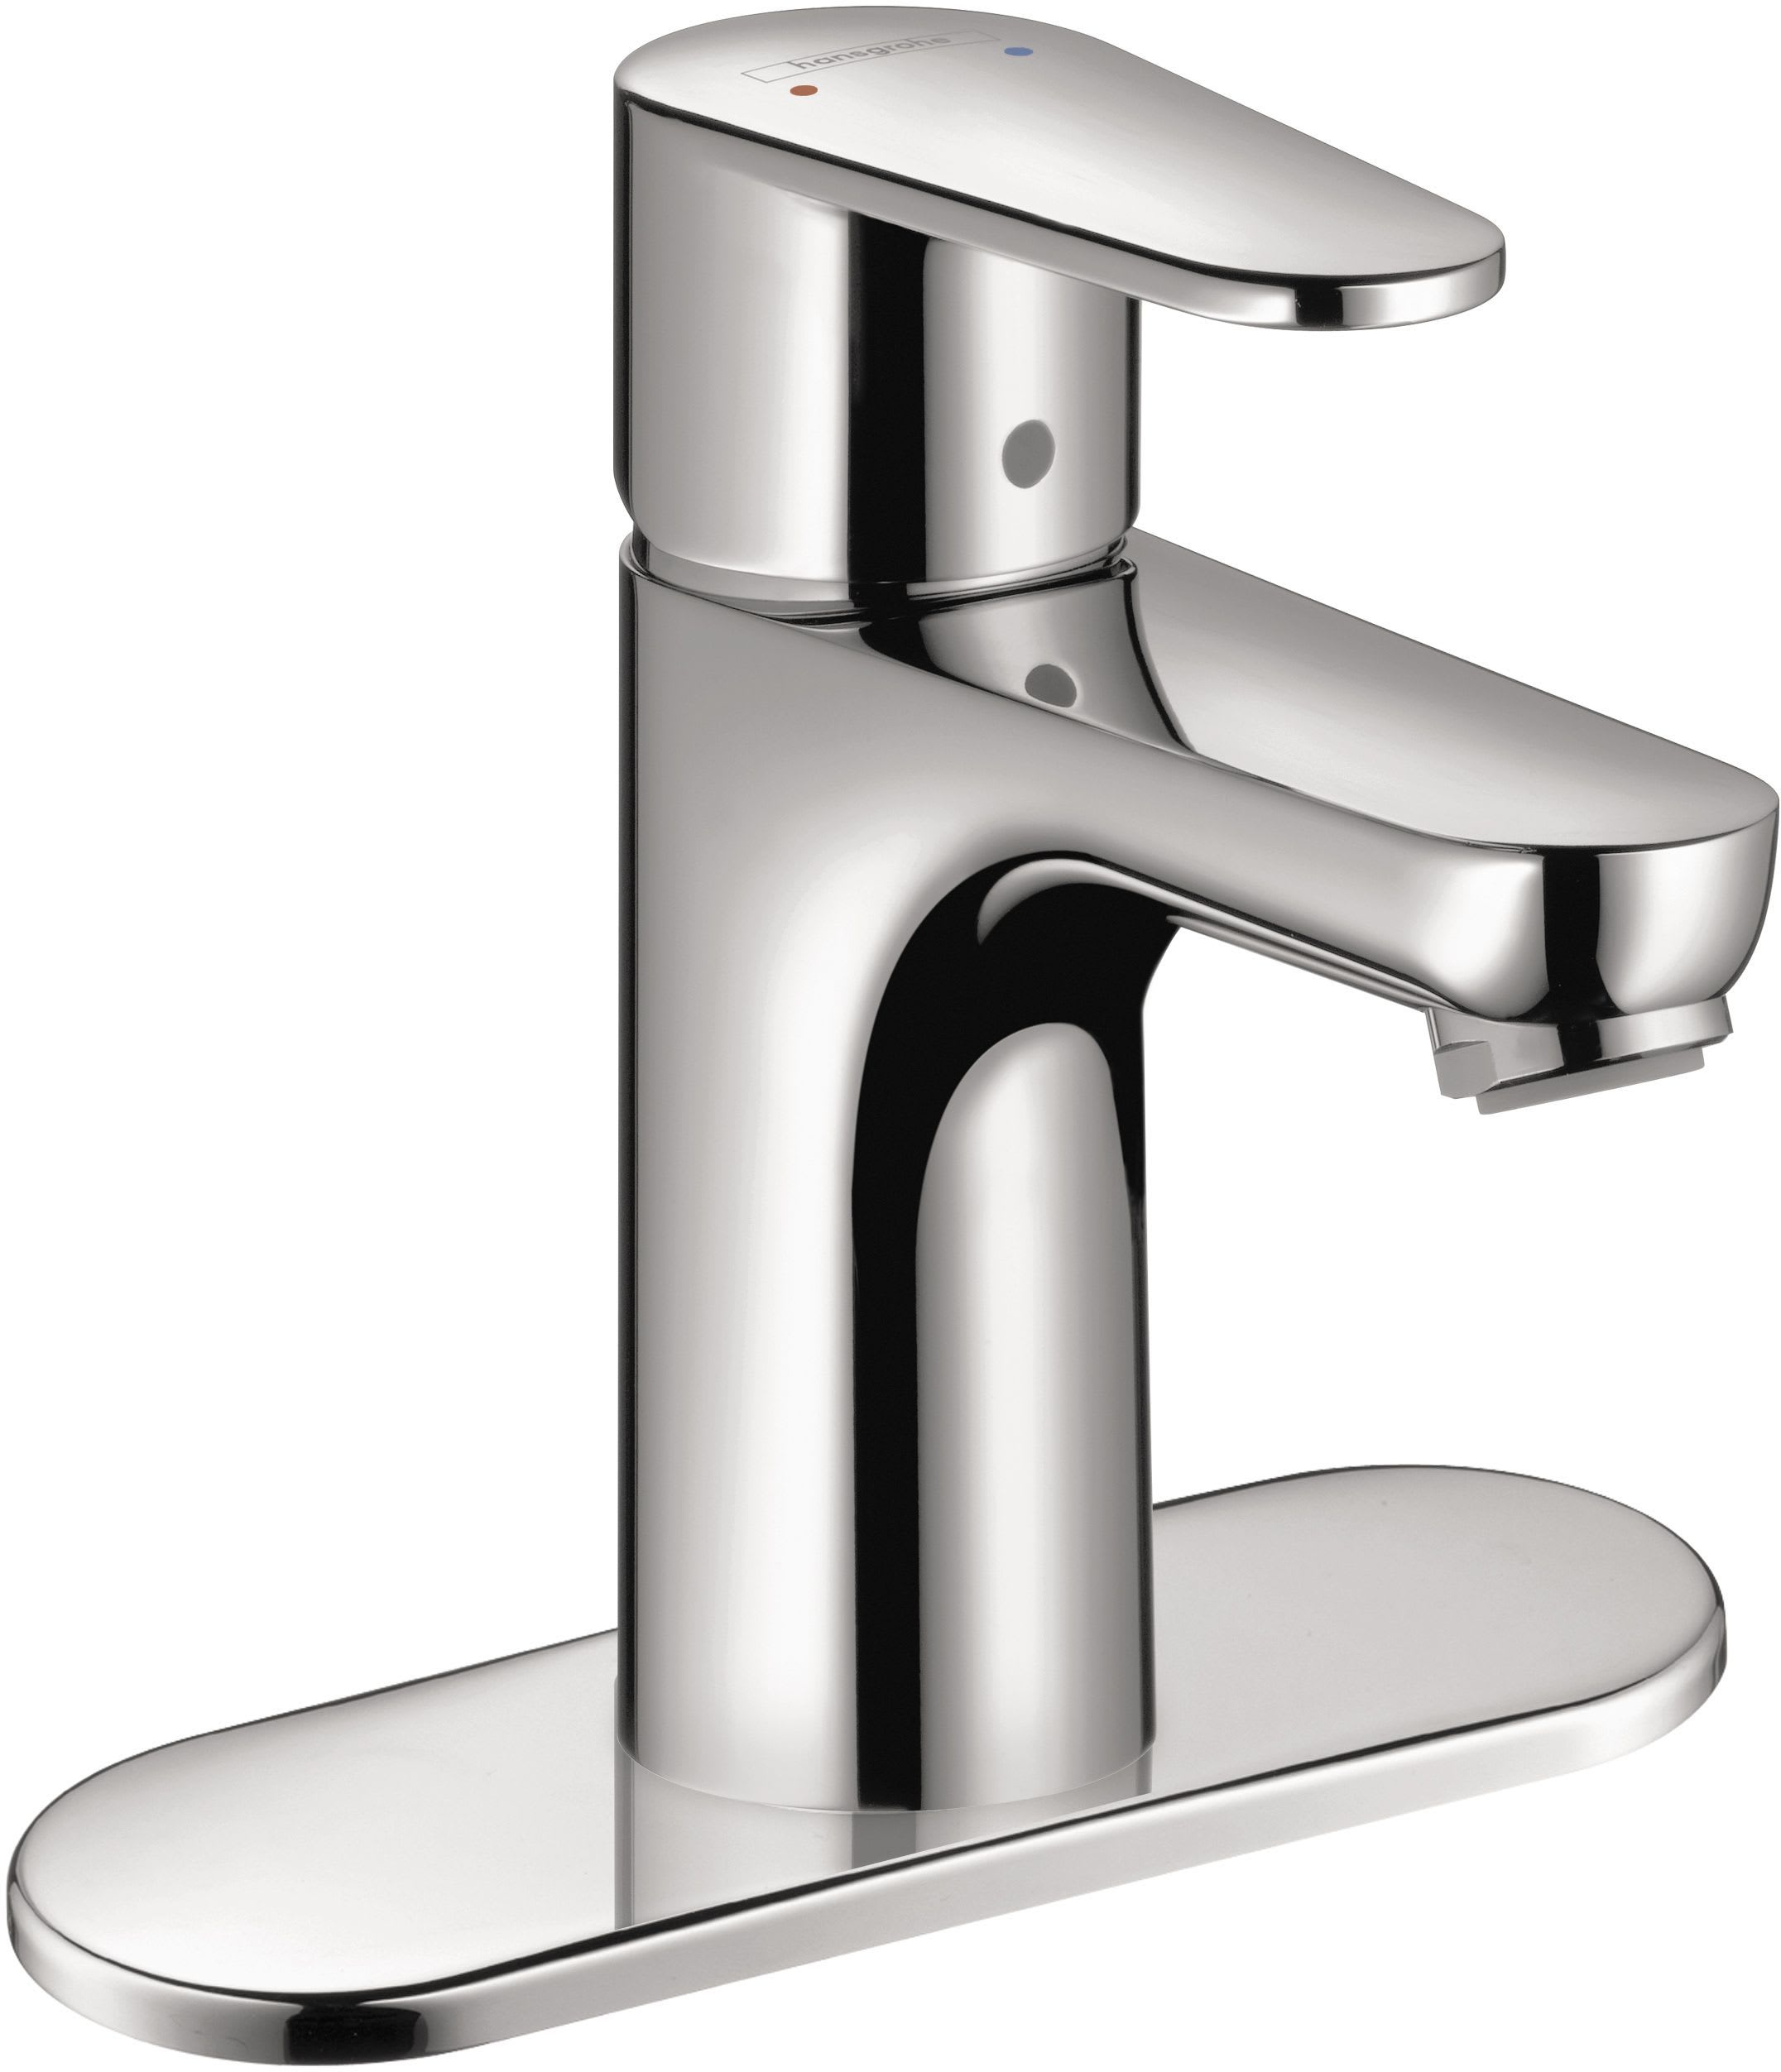 Berühmt Hansgrohe 31612001 Chrome Talis E 1.2 GPM Single Hole Bathroom JB81